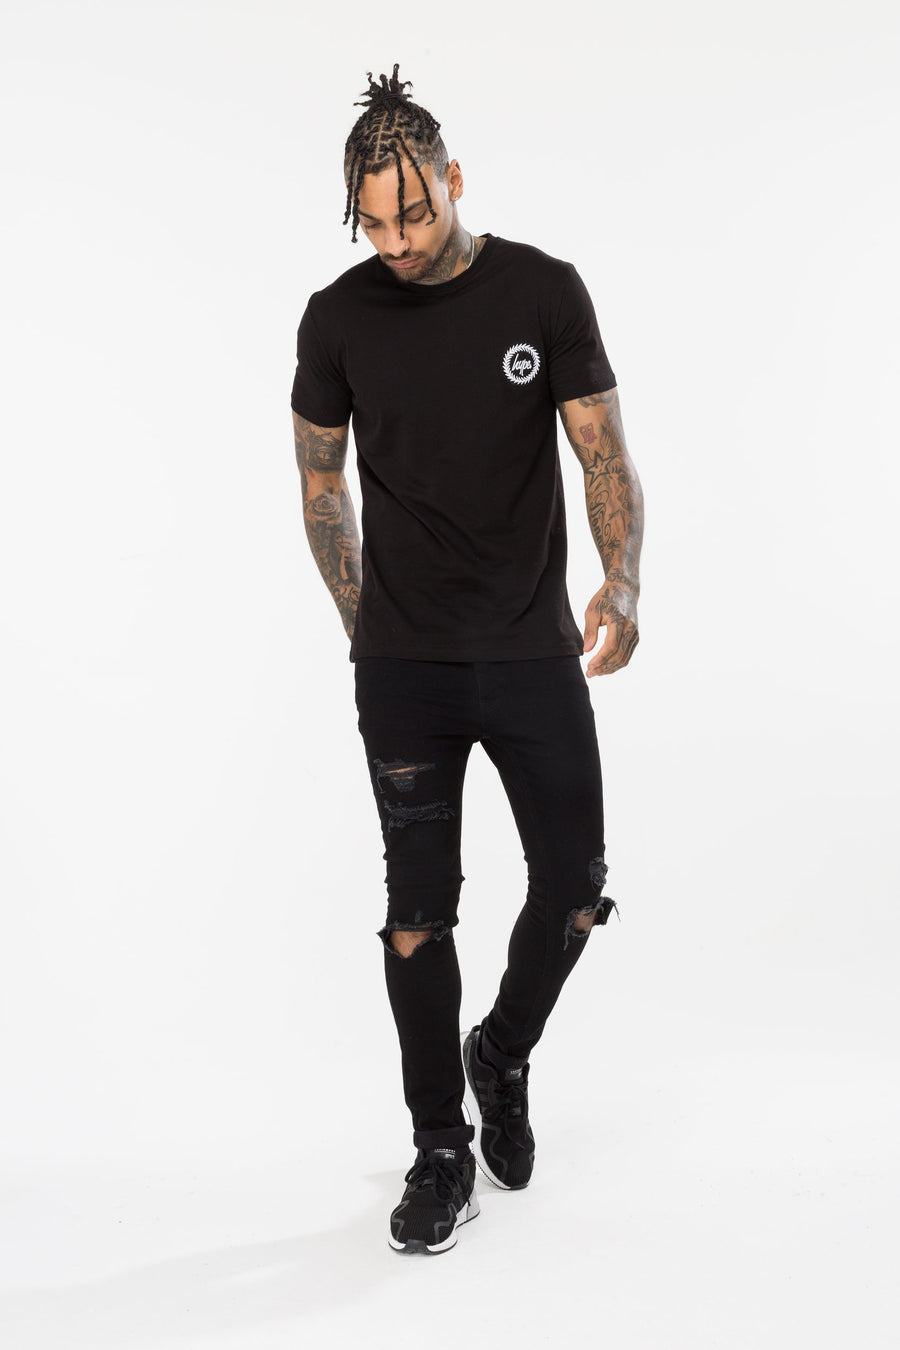 HYPE BELIEVE THE ROSE MEN'S T-SHIRT